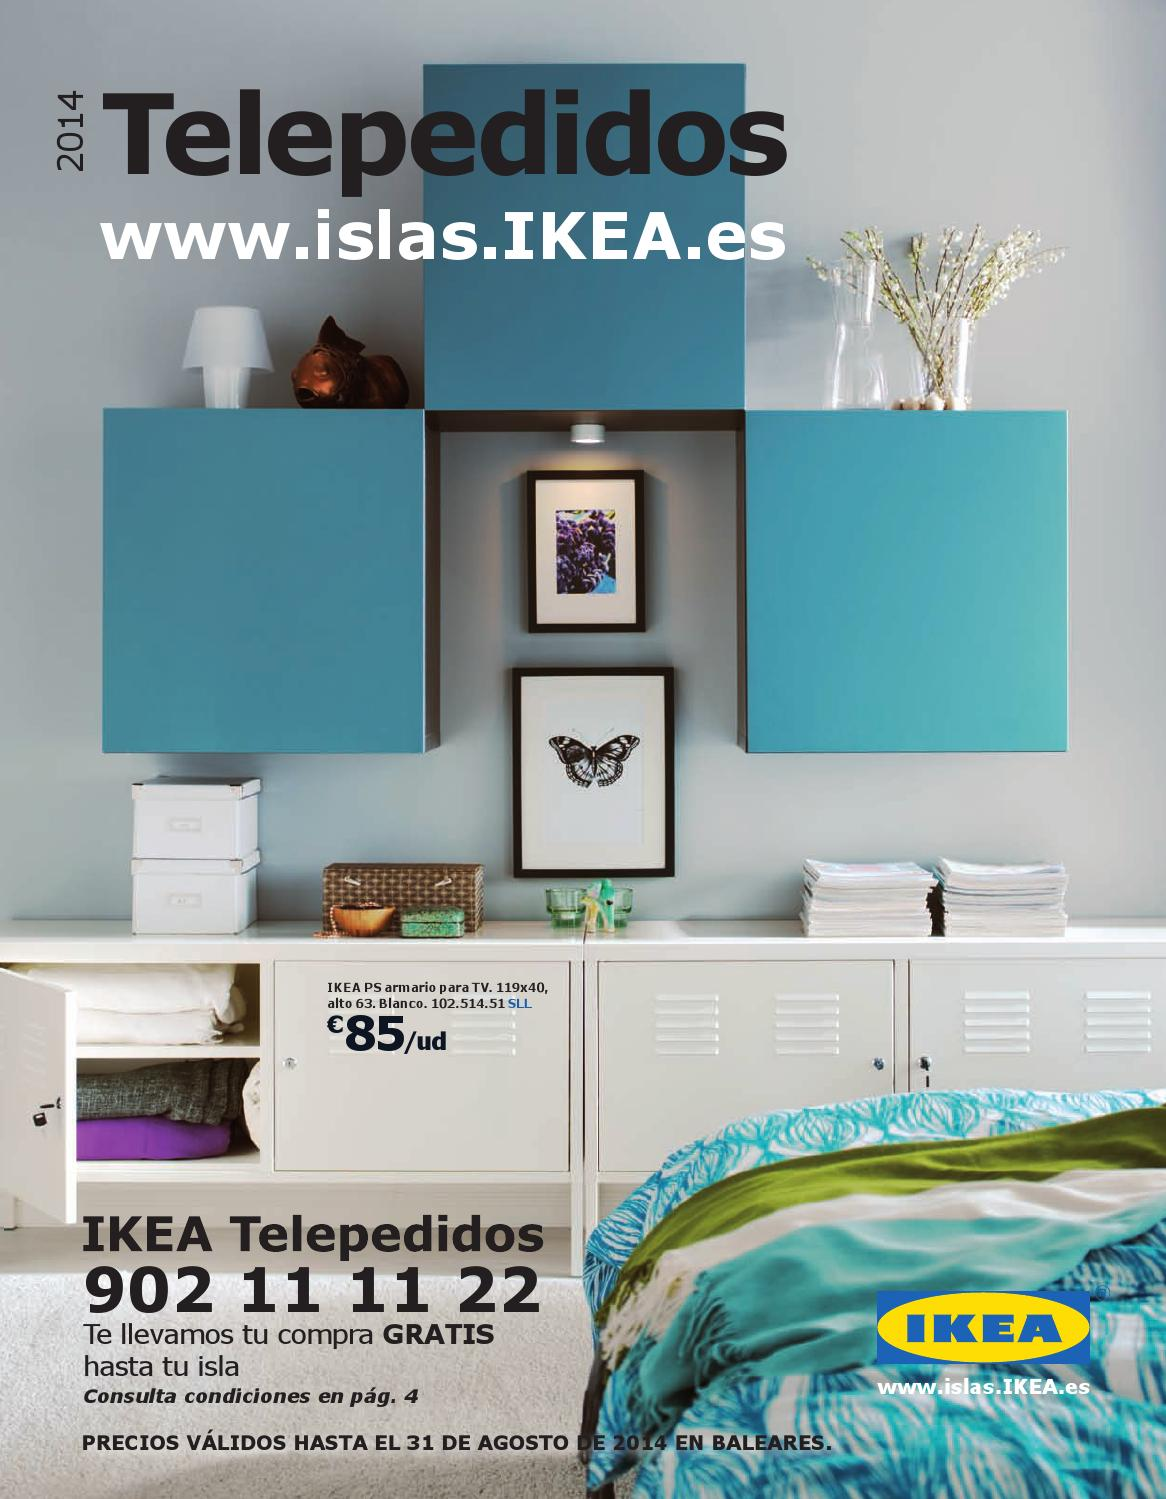 Top IKEA Catu00c3u00a1logo Espau00c3u00b1a by CatalogoPromocionescom - issuu with